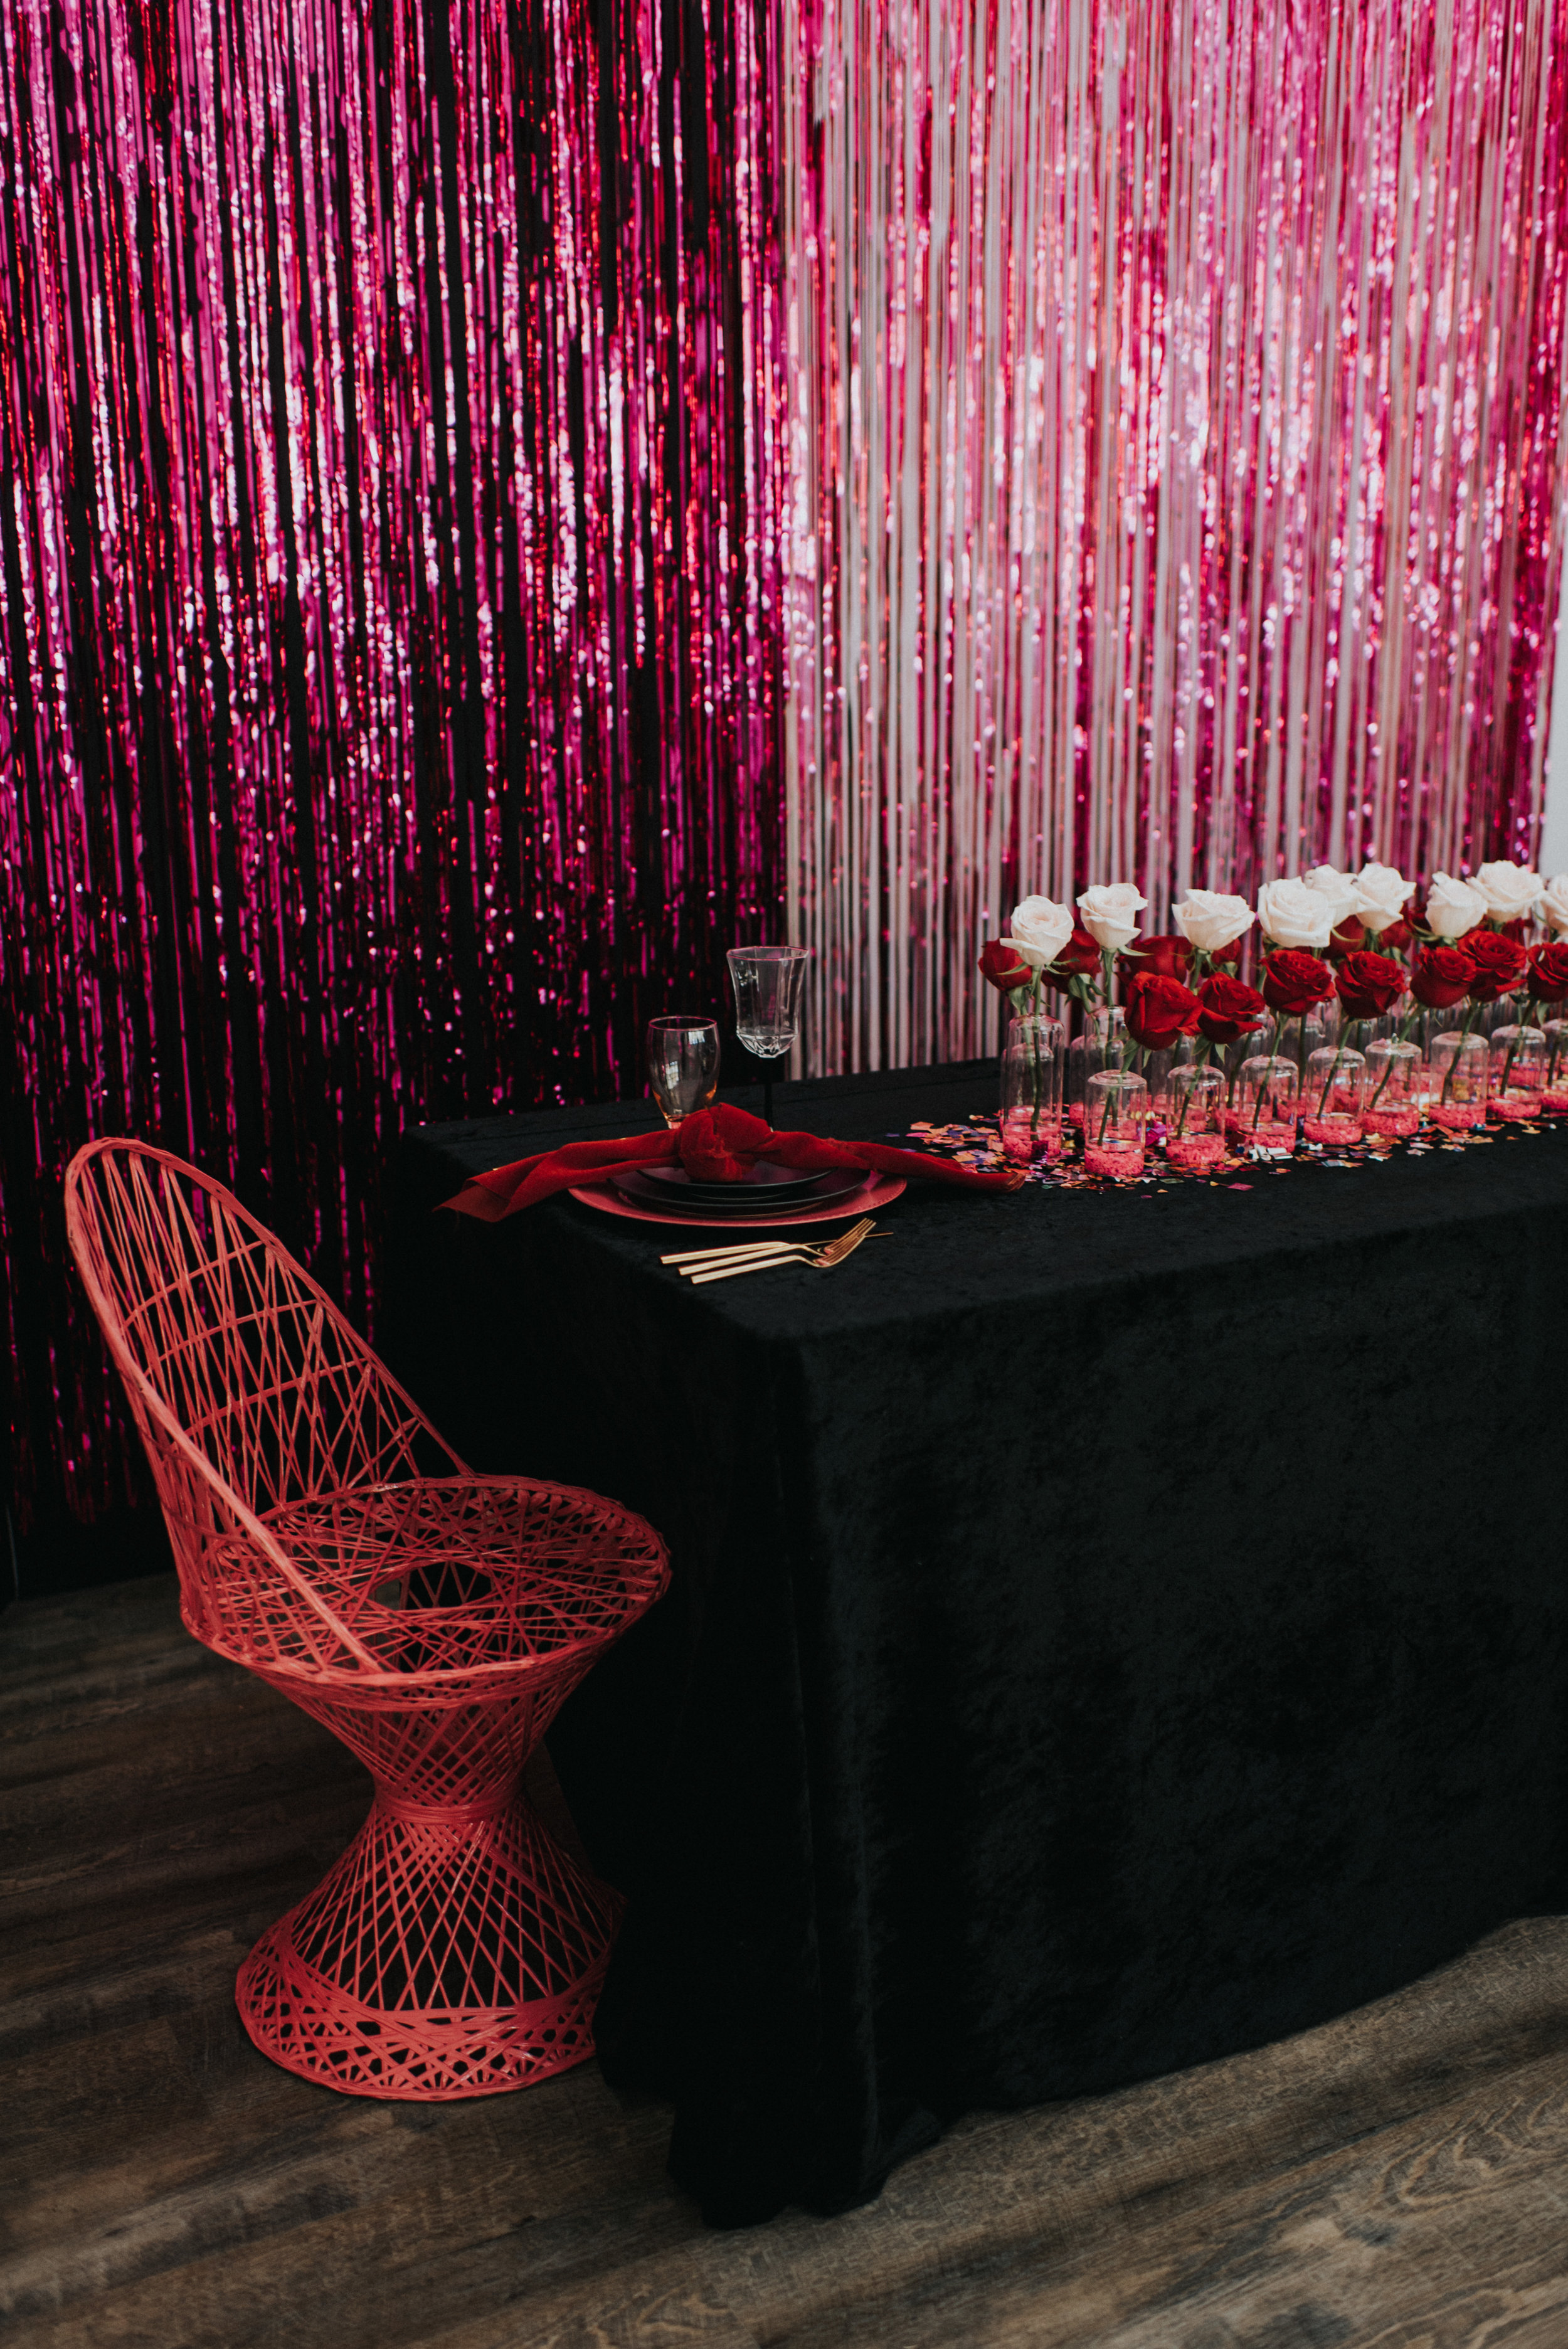 Millennial Pink Inspired Wedding - Hot Pink Sweetheart Table Backdrop